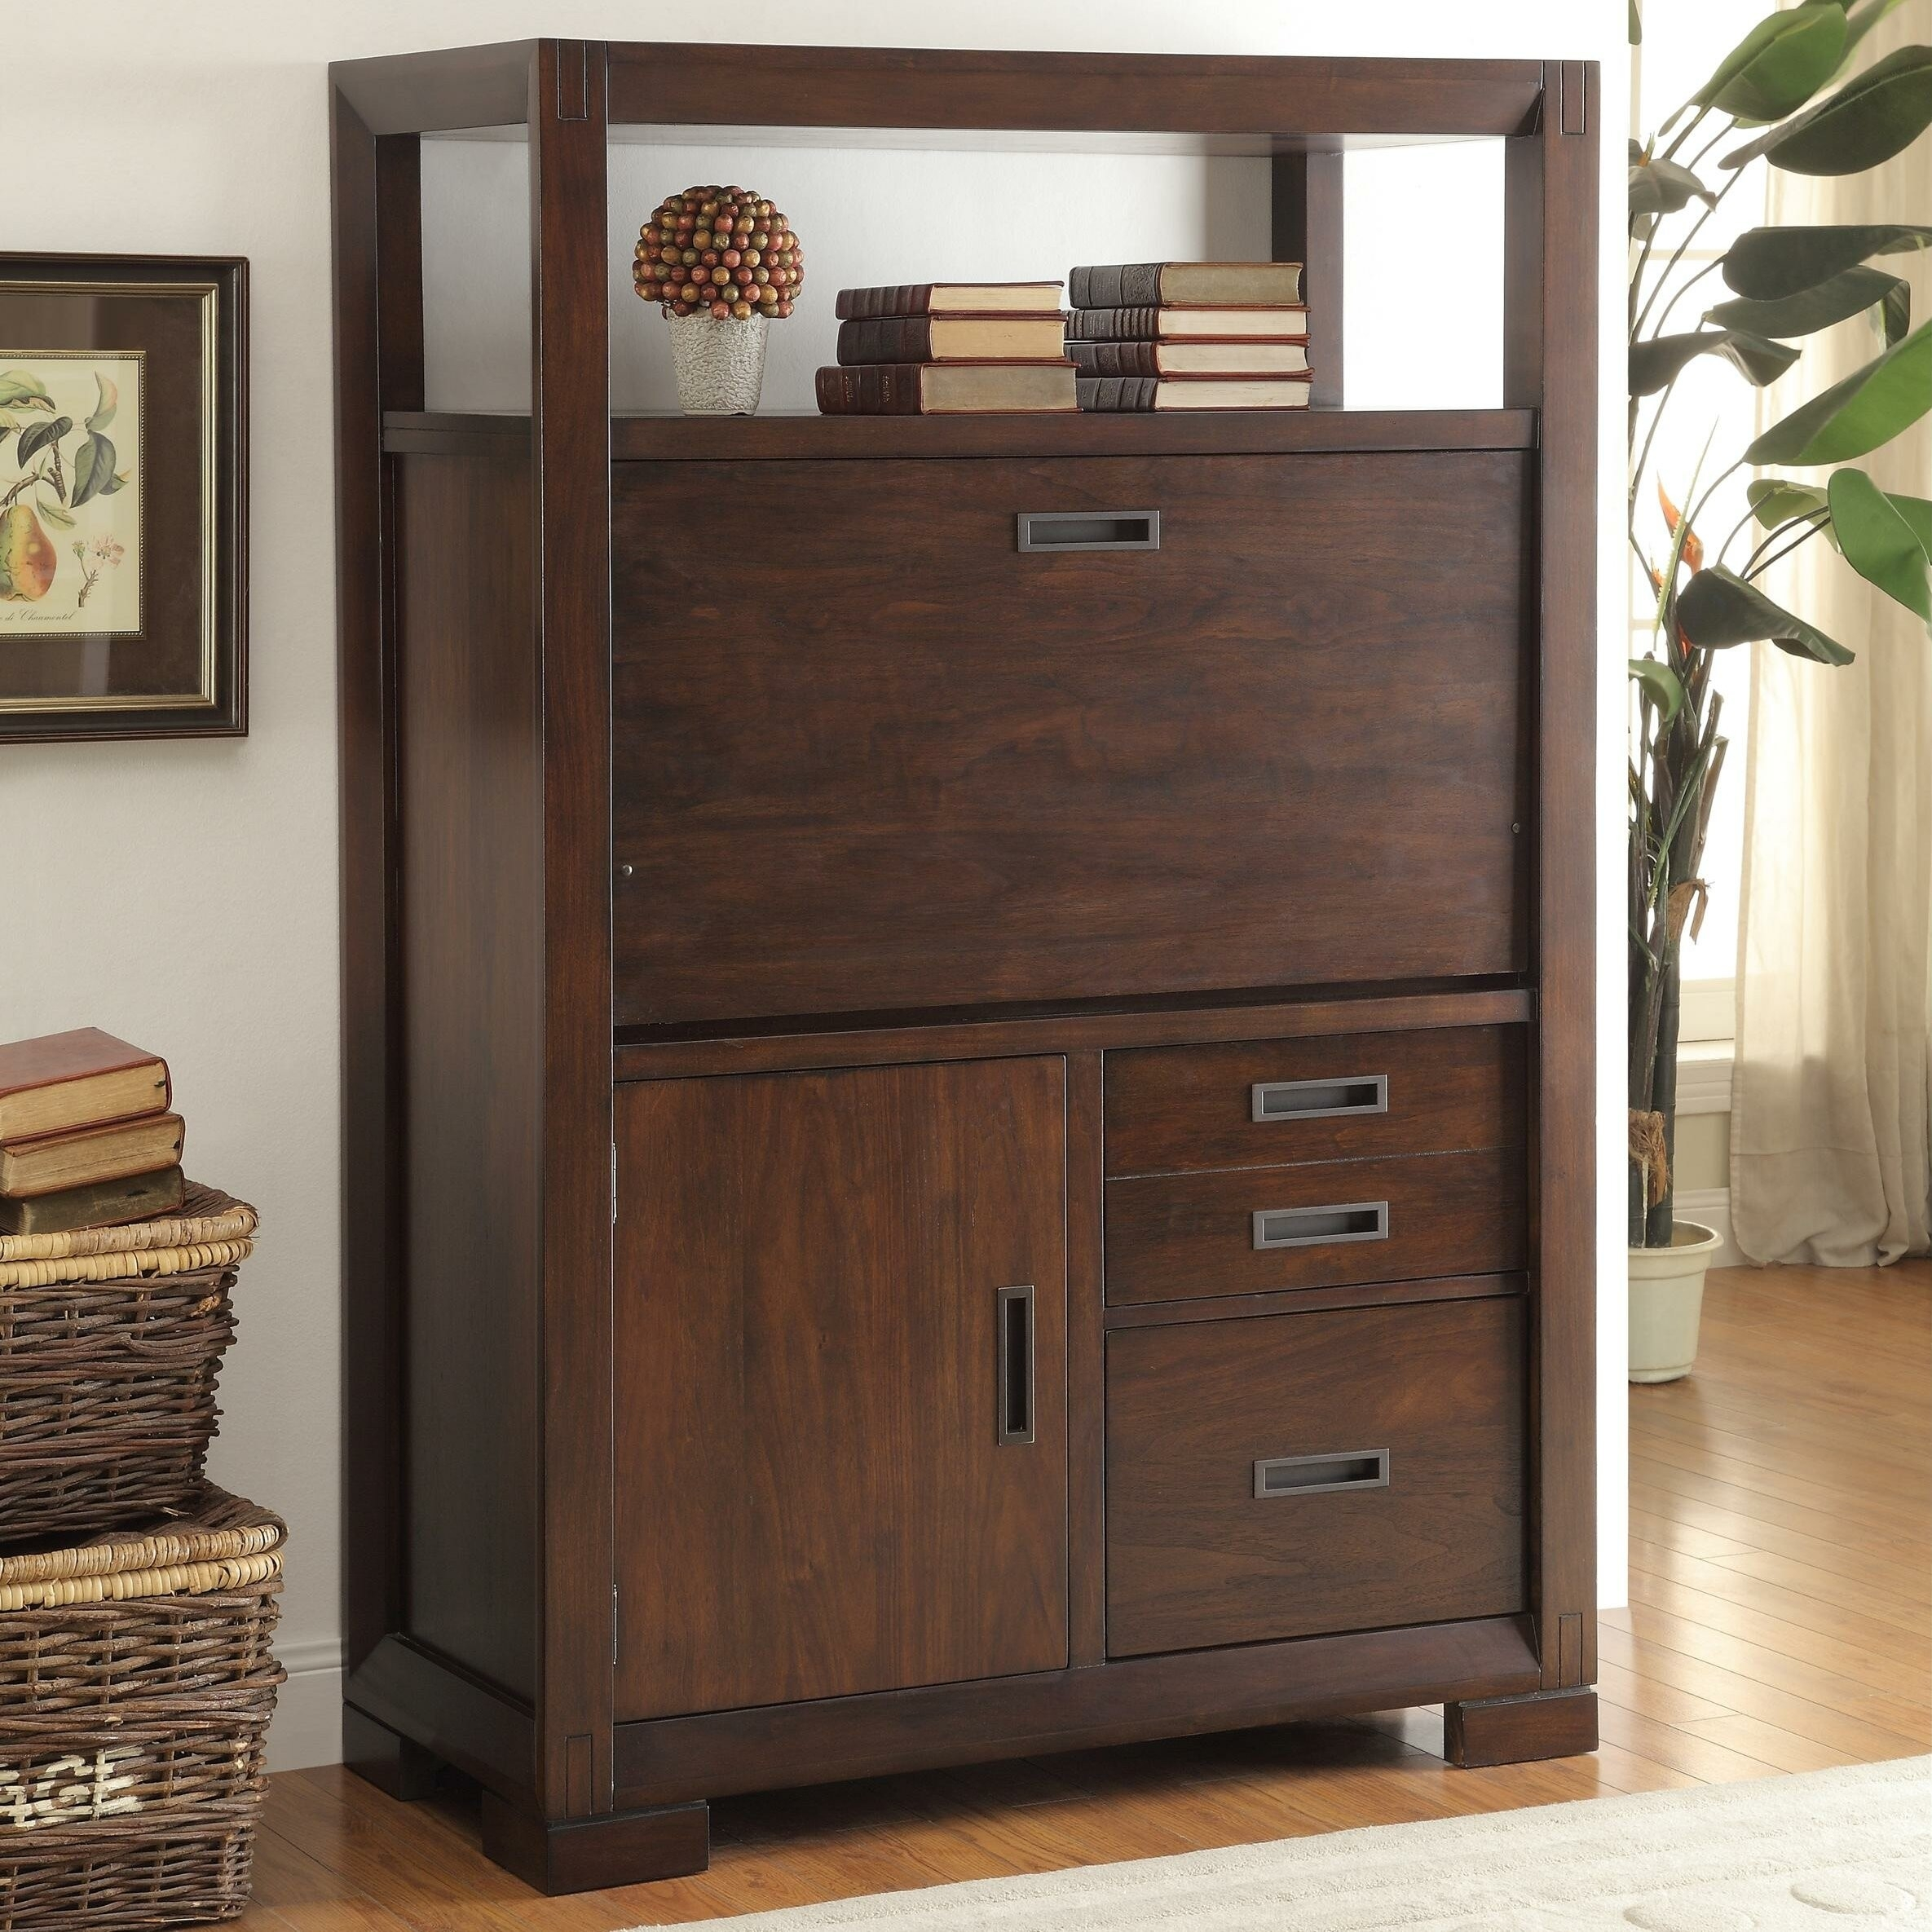 Computer Armoire With Pocket Doors For 2020 Ideas On Foter